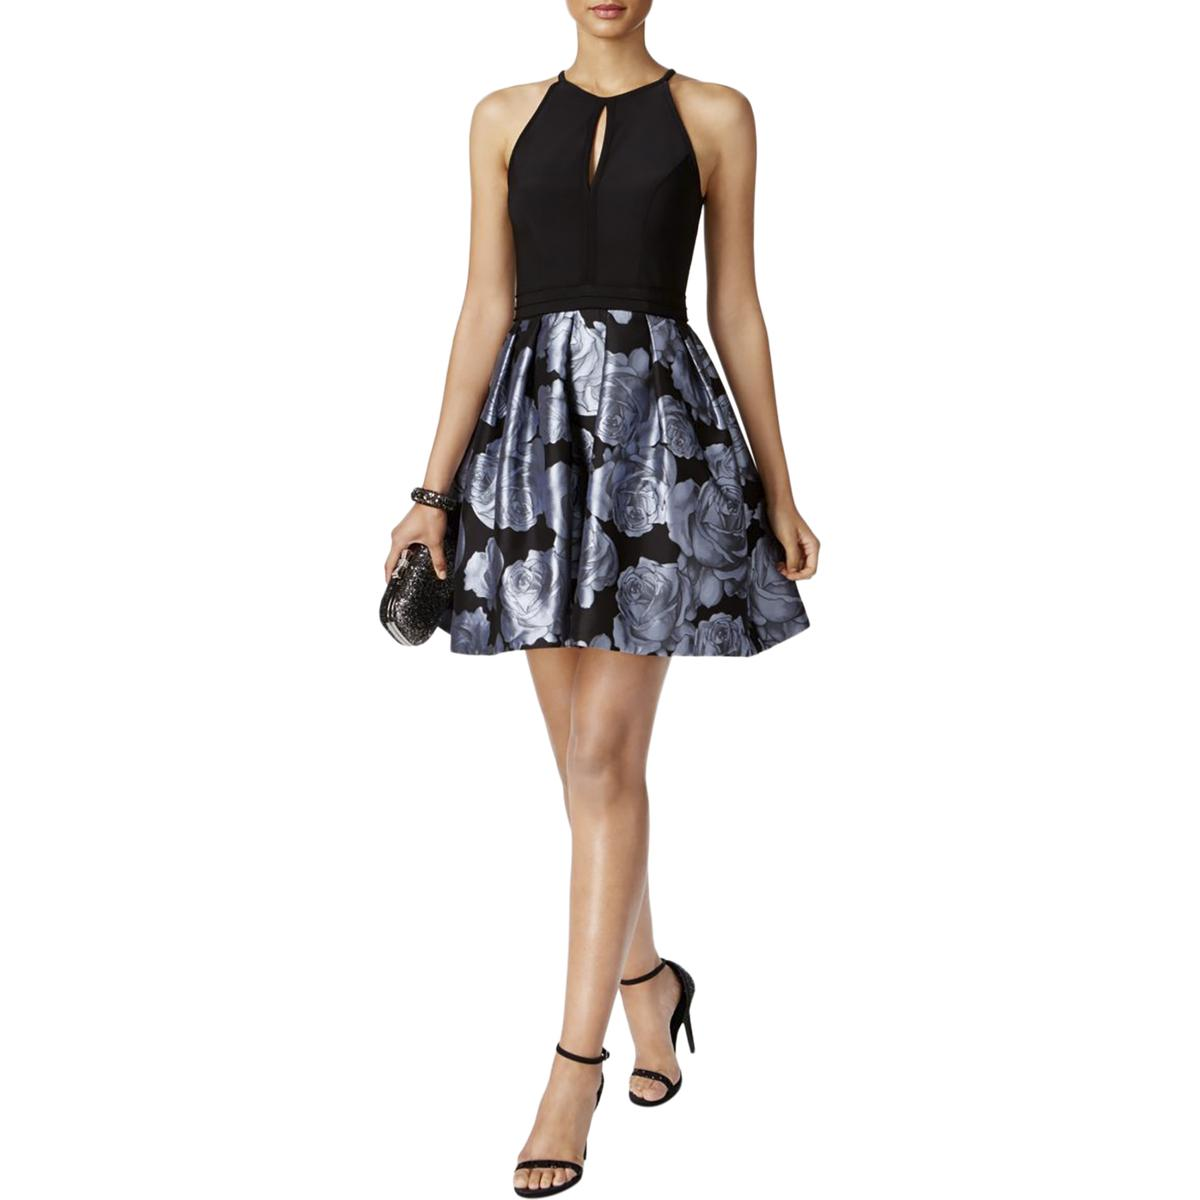 45848ac5e5 Details about Xscape Womens Floral Print Halter Party Semi-Formal Dress  BHFO 1763